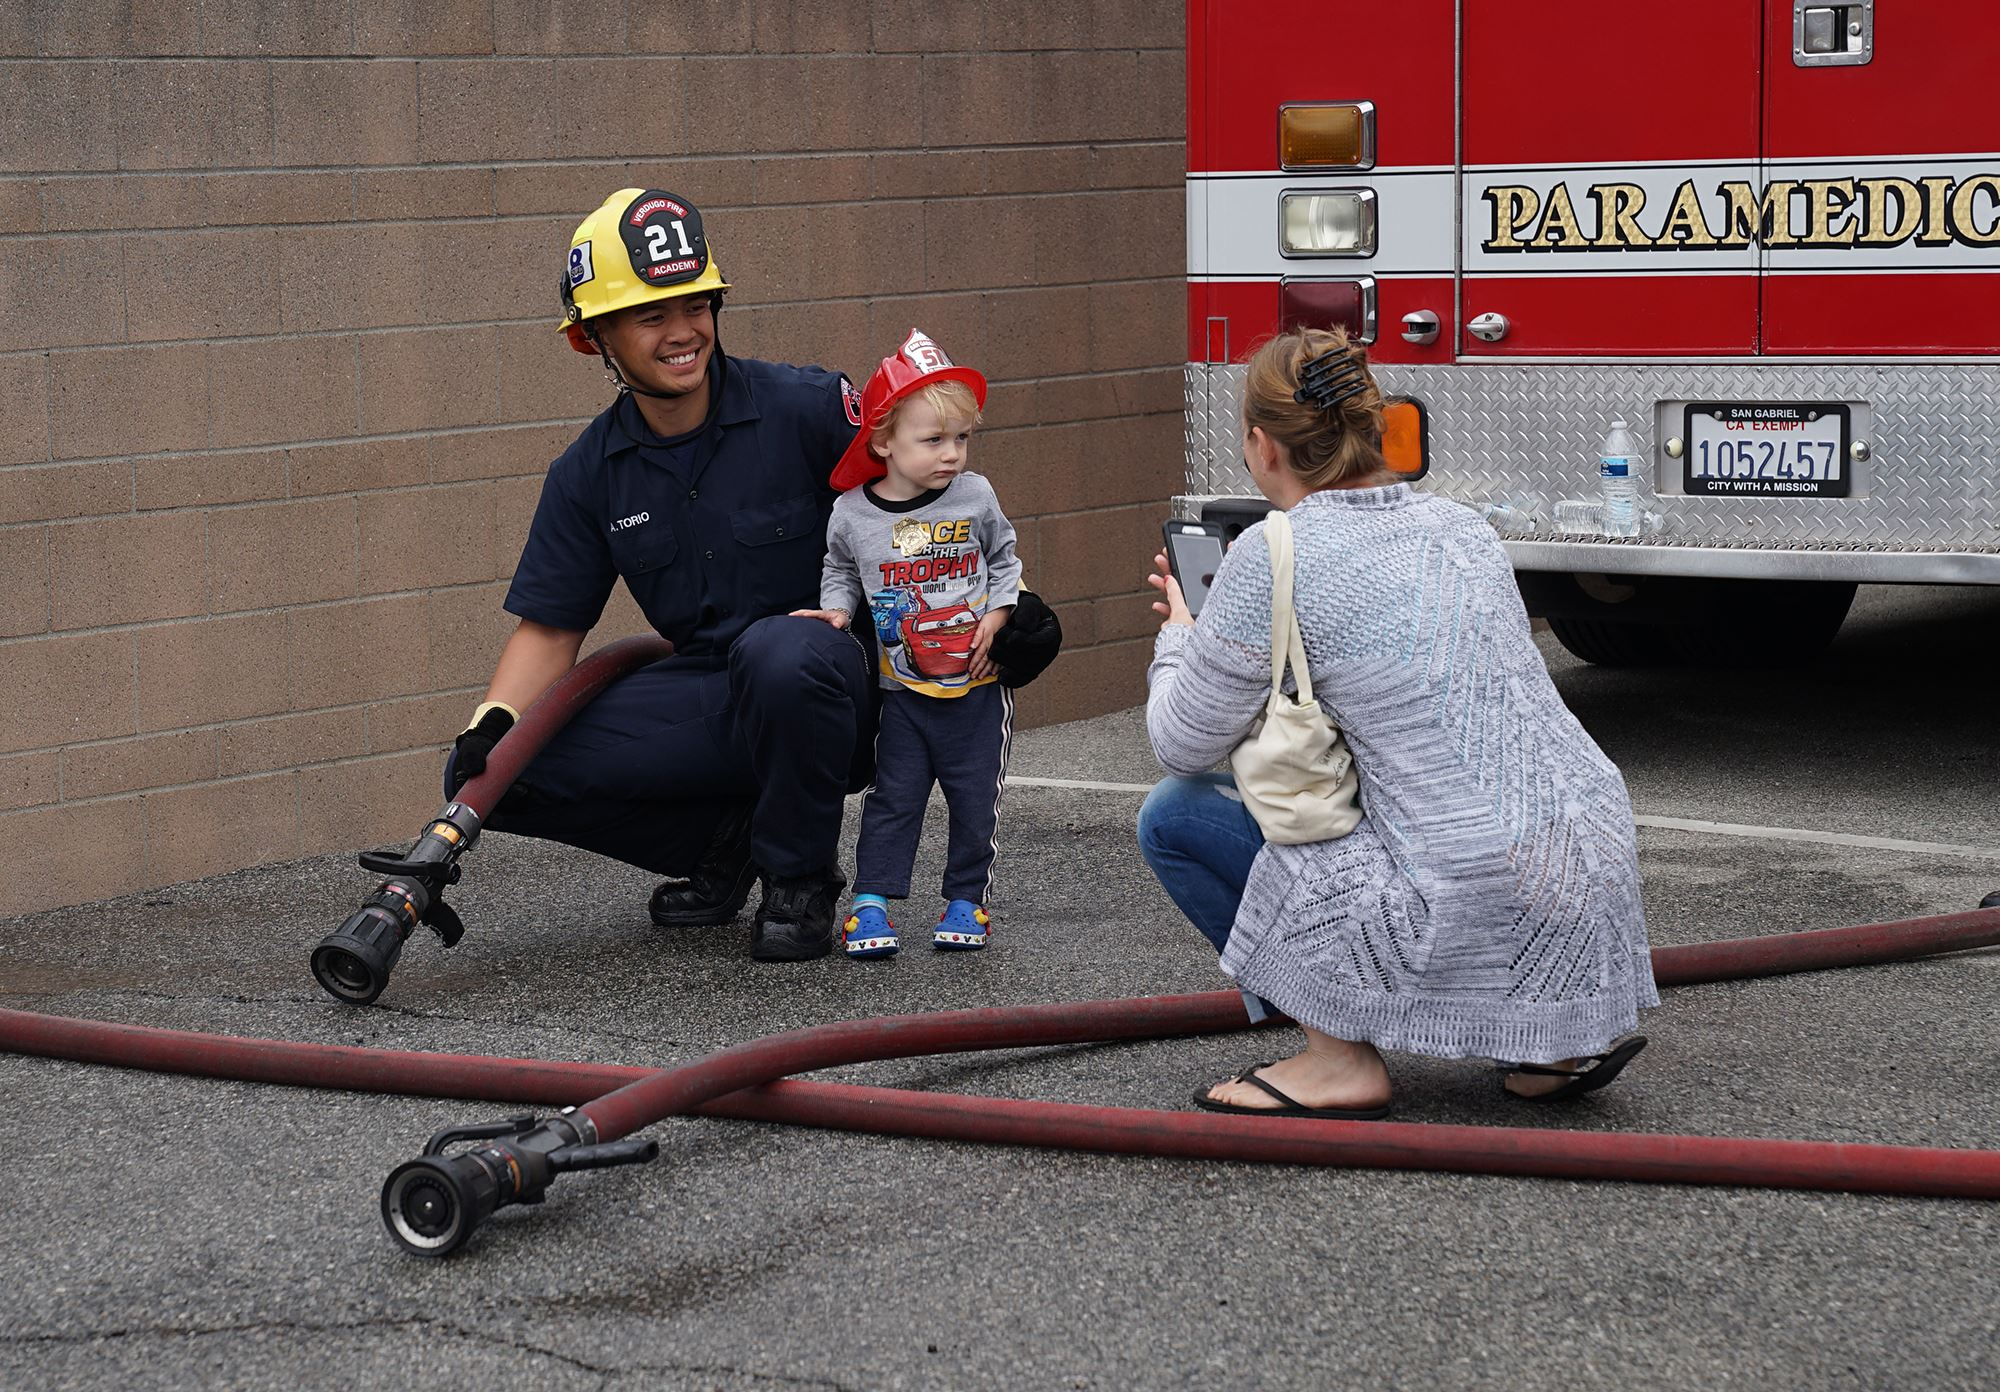 Celebrate Fire Service Day on May 11